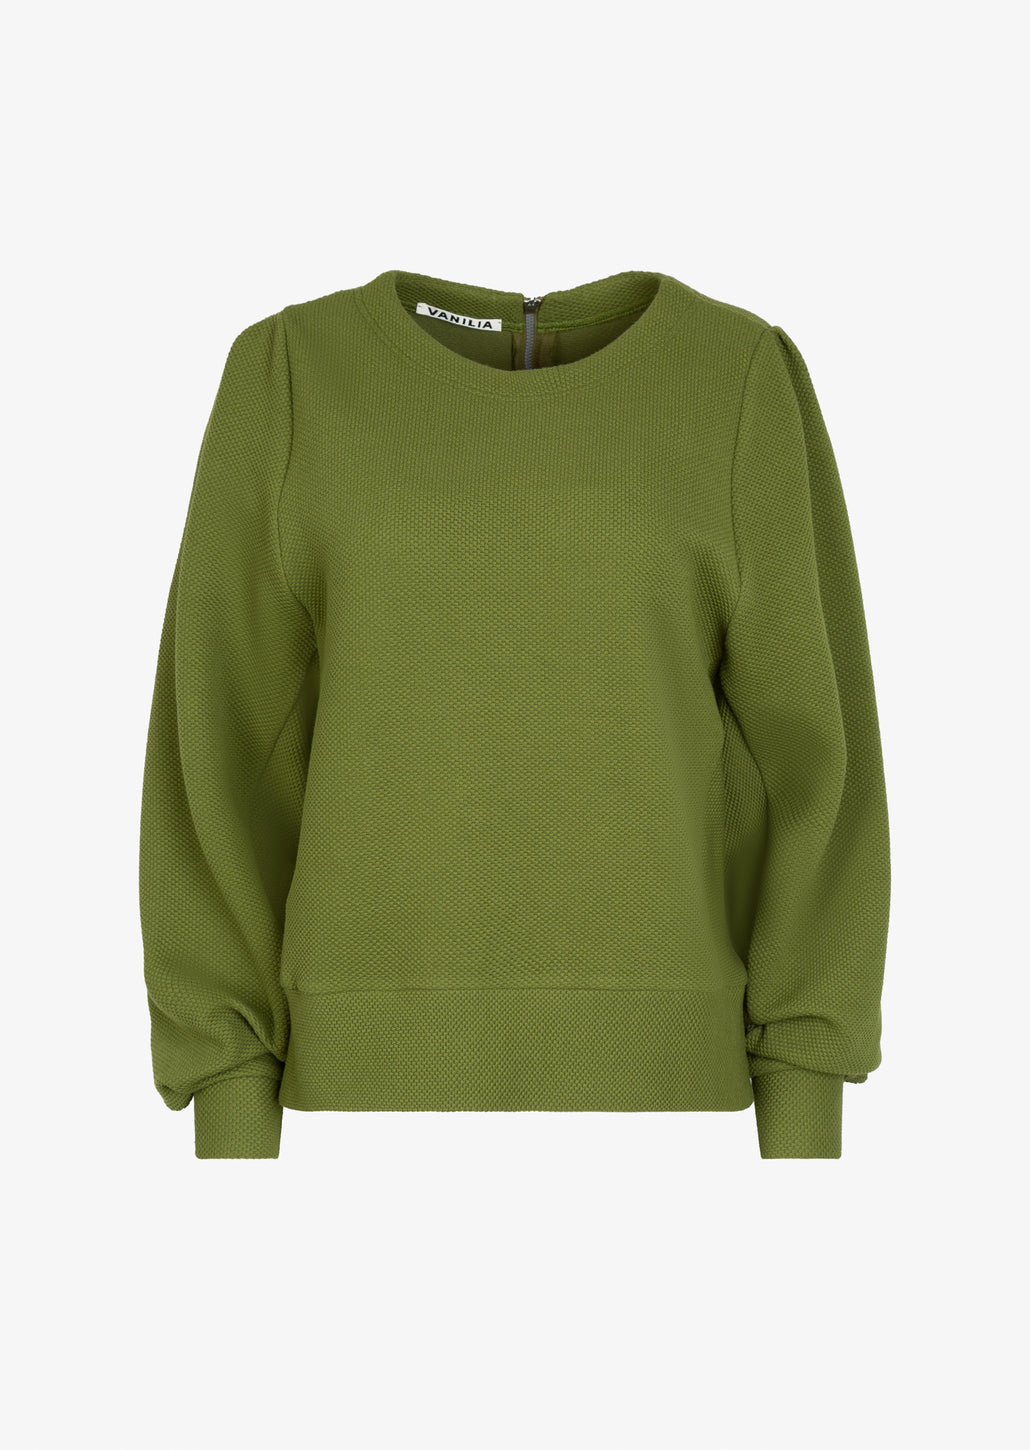 groene dames sweater relaxed-fit productbeeld